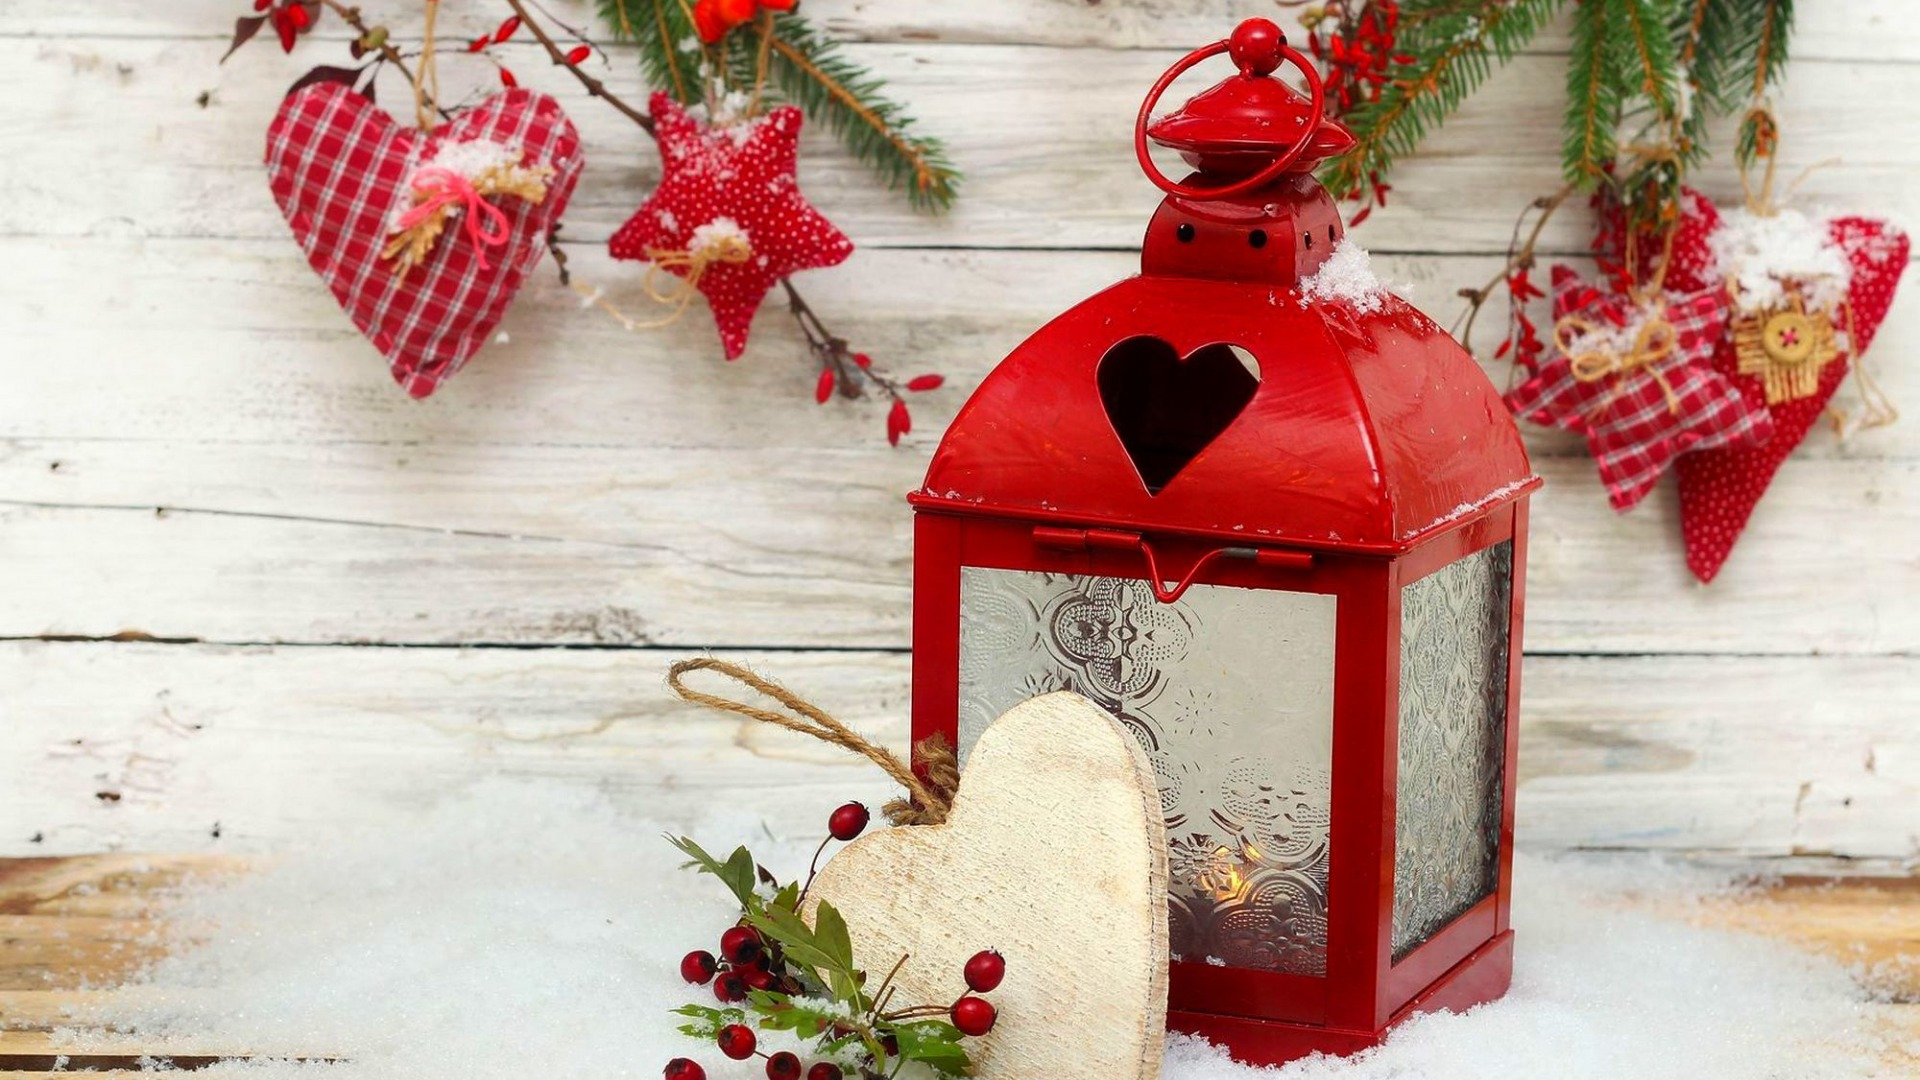 Download-winter-snow-holiday-heart-star-candles-Christmas-lantern-New-year-star-wallpaper-wpc9004499